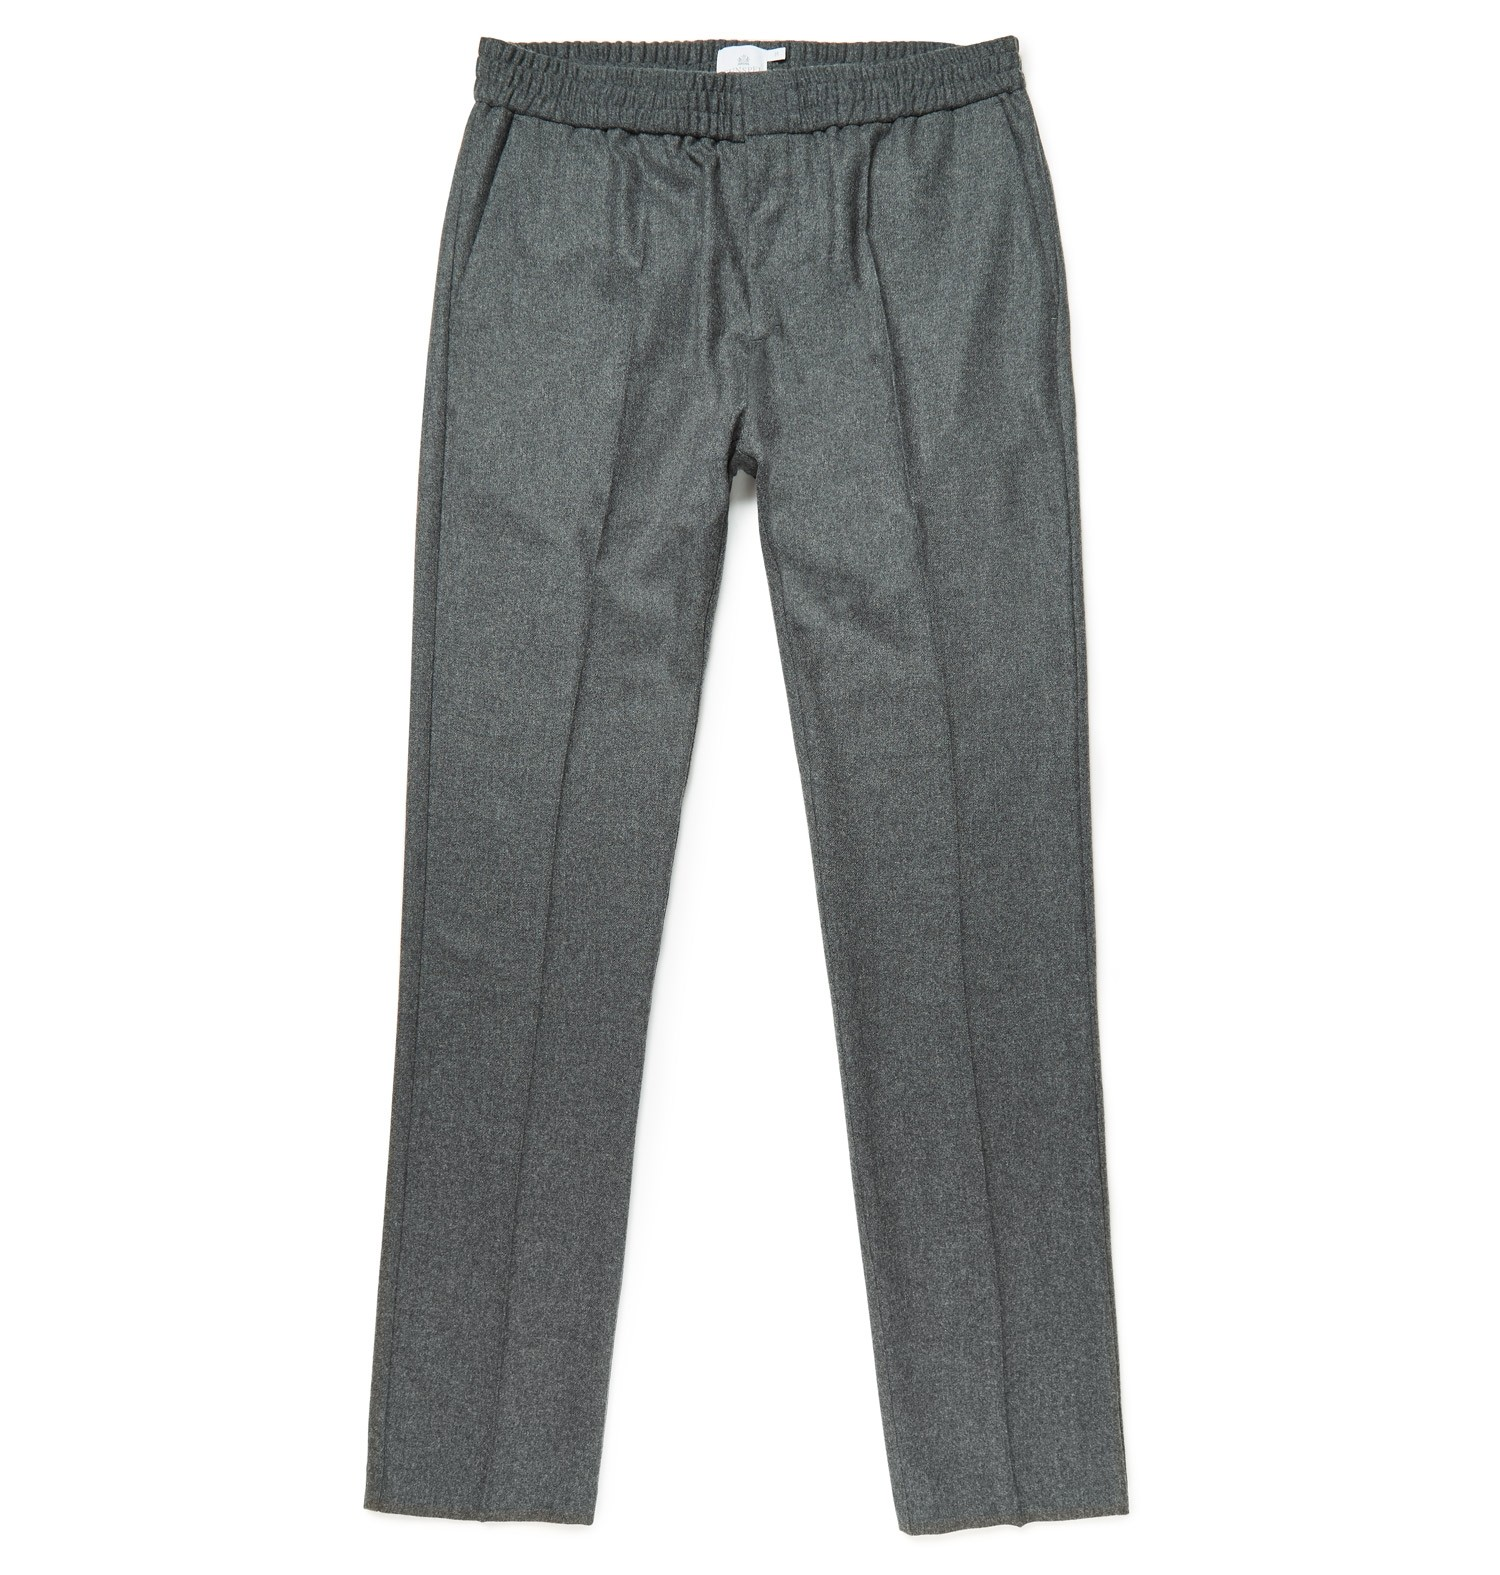 Sunspel Wool Trouser Men's Winter Fashion